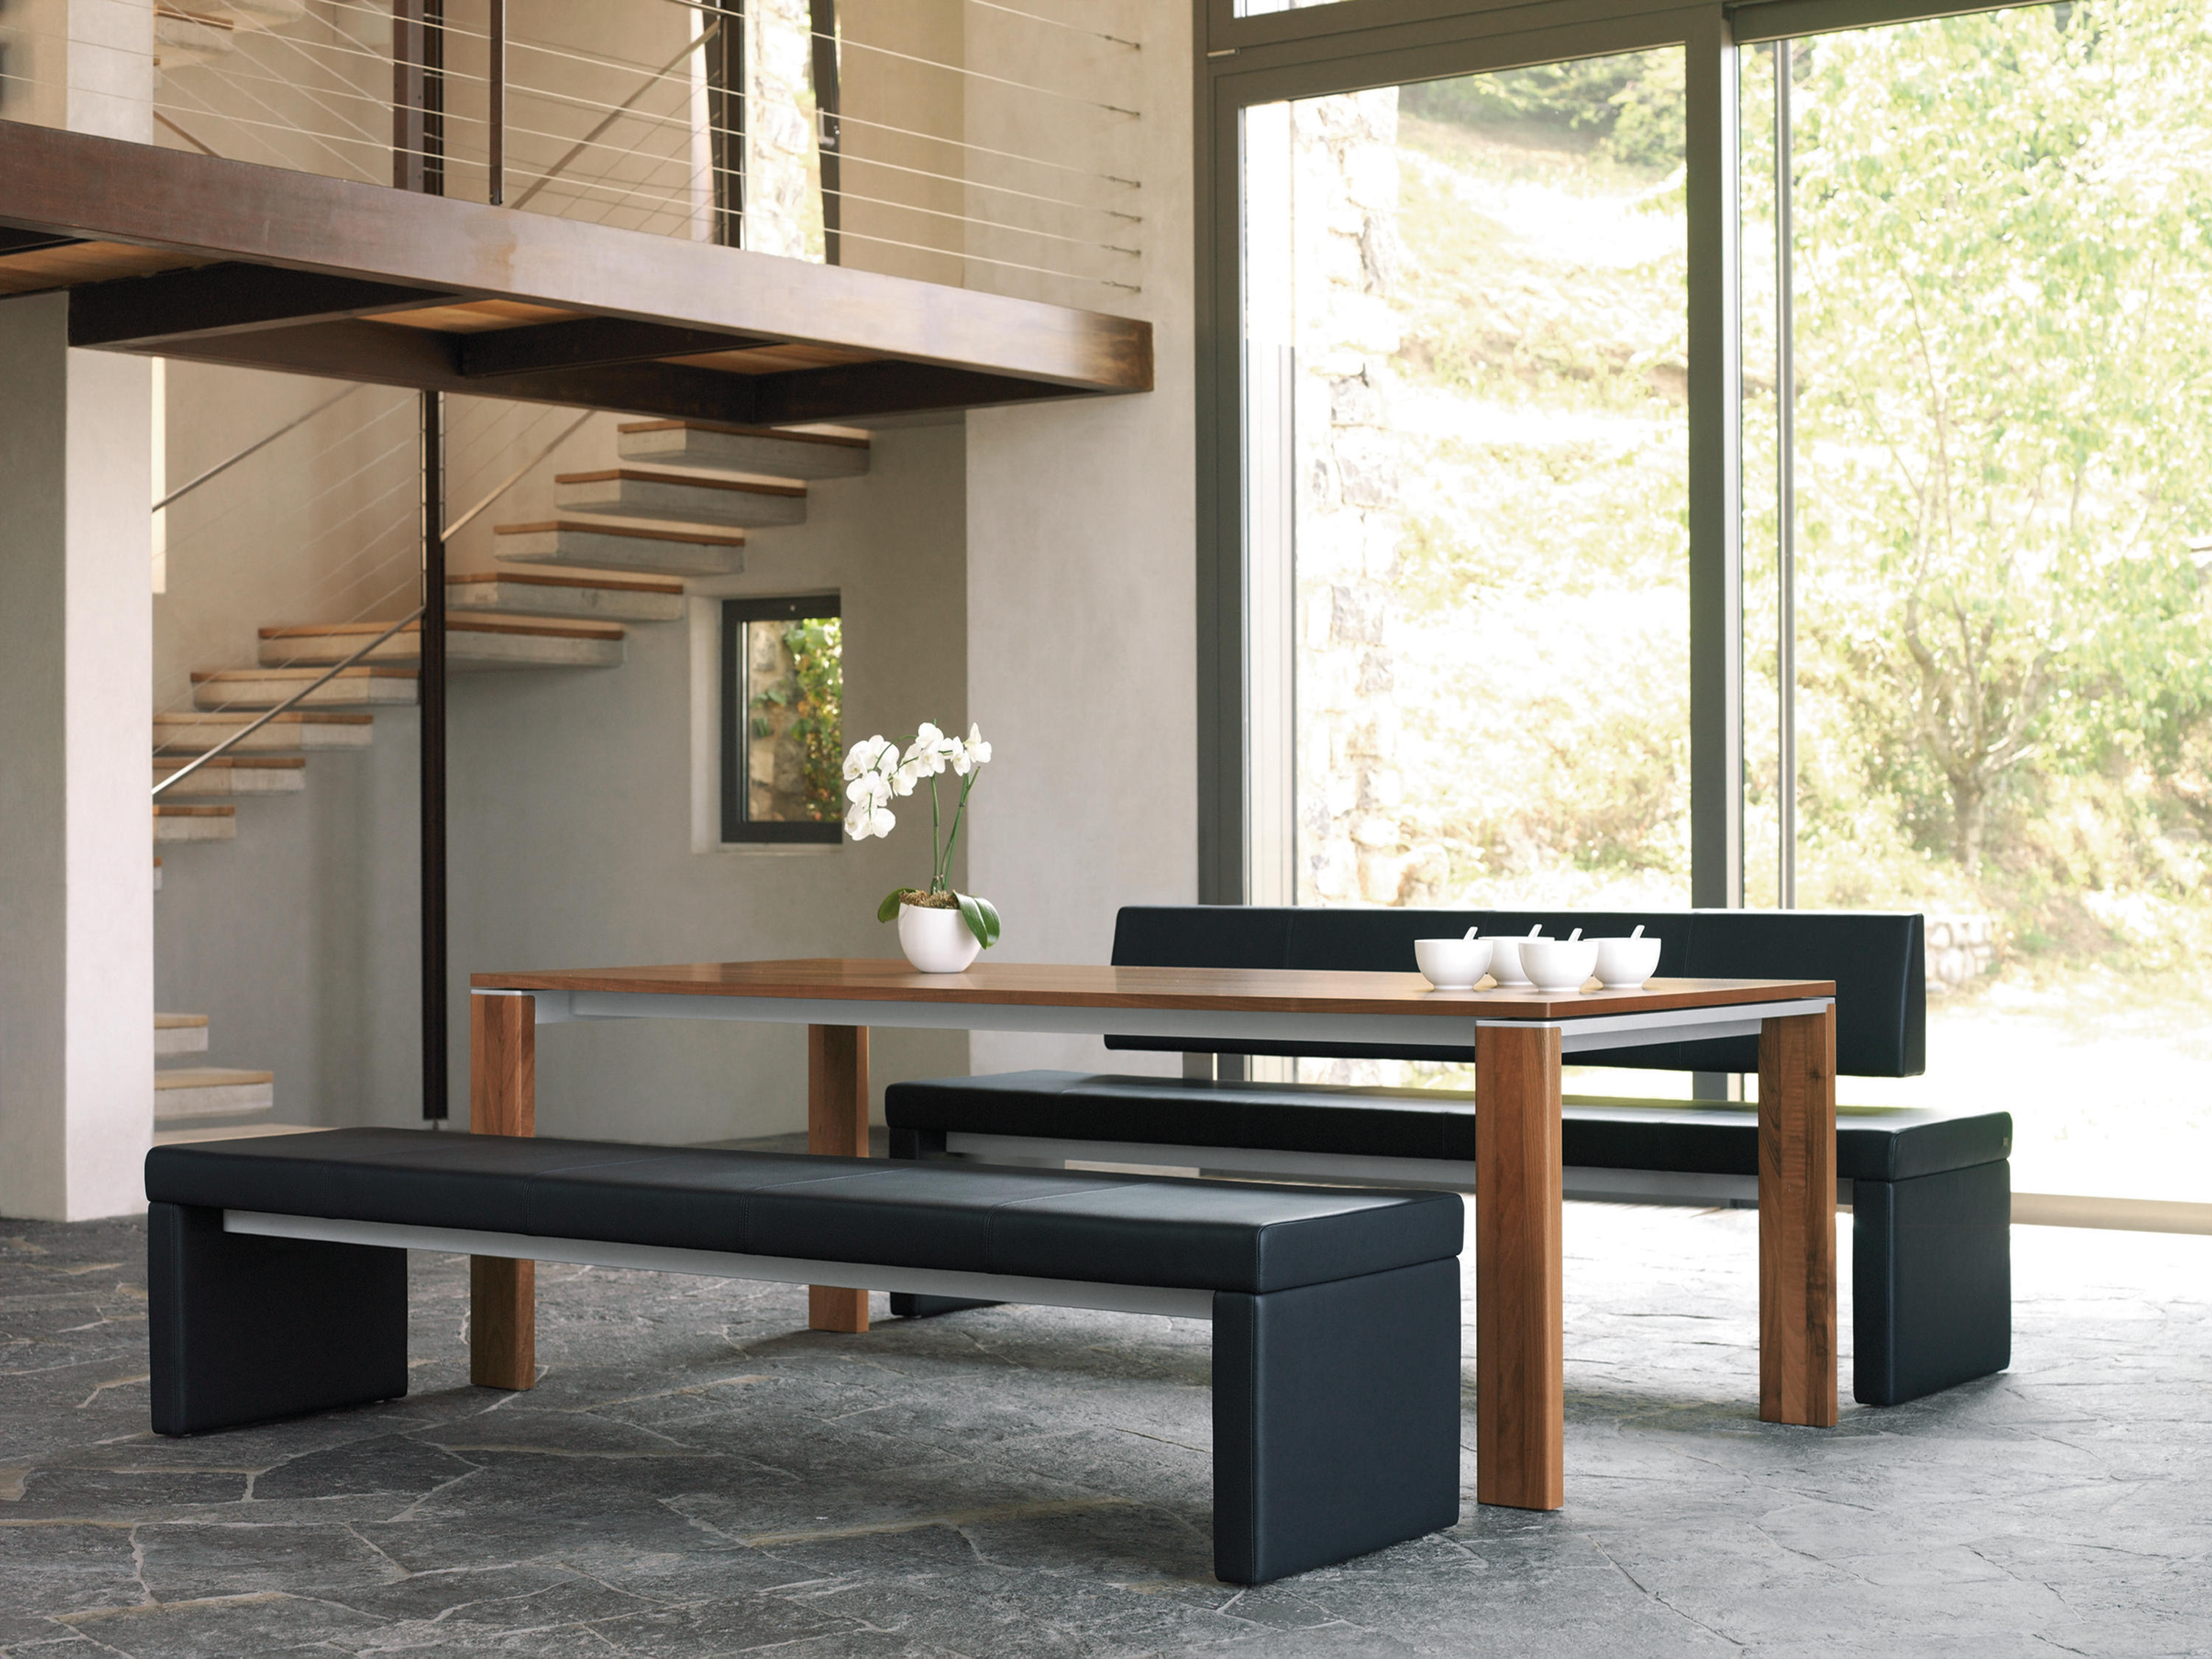 Rolf Benz Eetbank.Rolf Benz 620 Benches From Rolf Benz Architonic